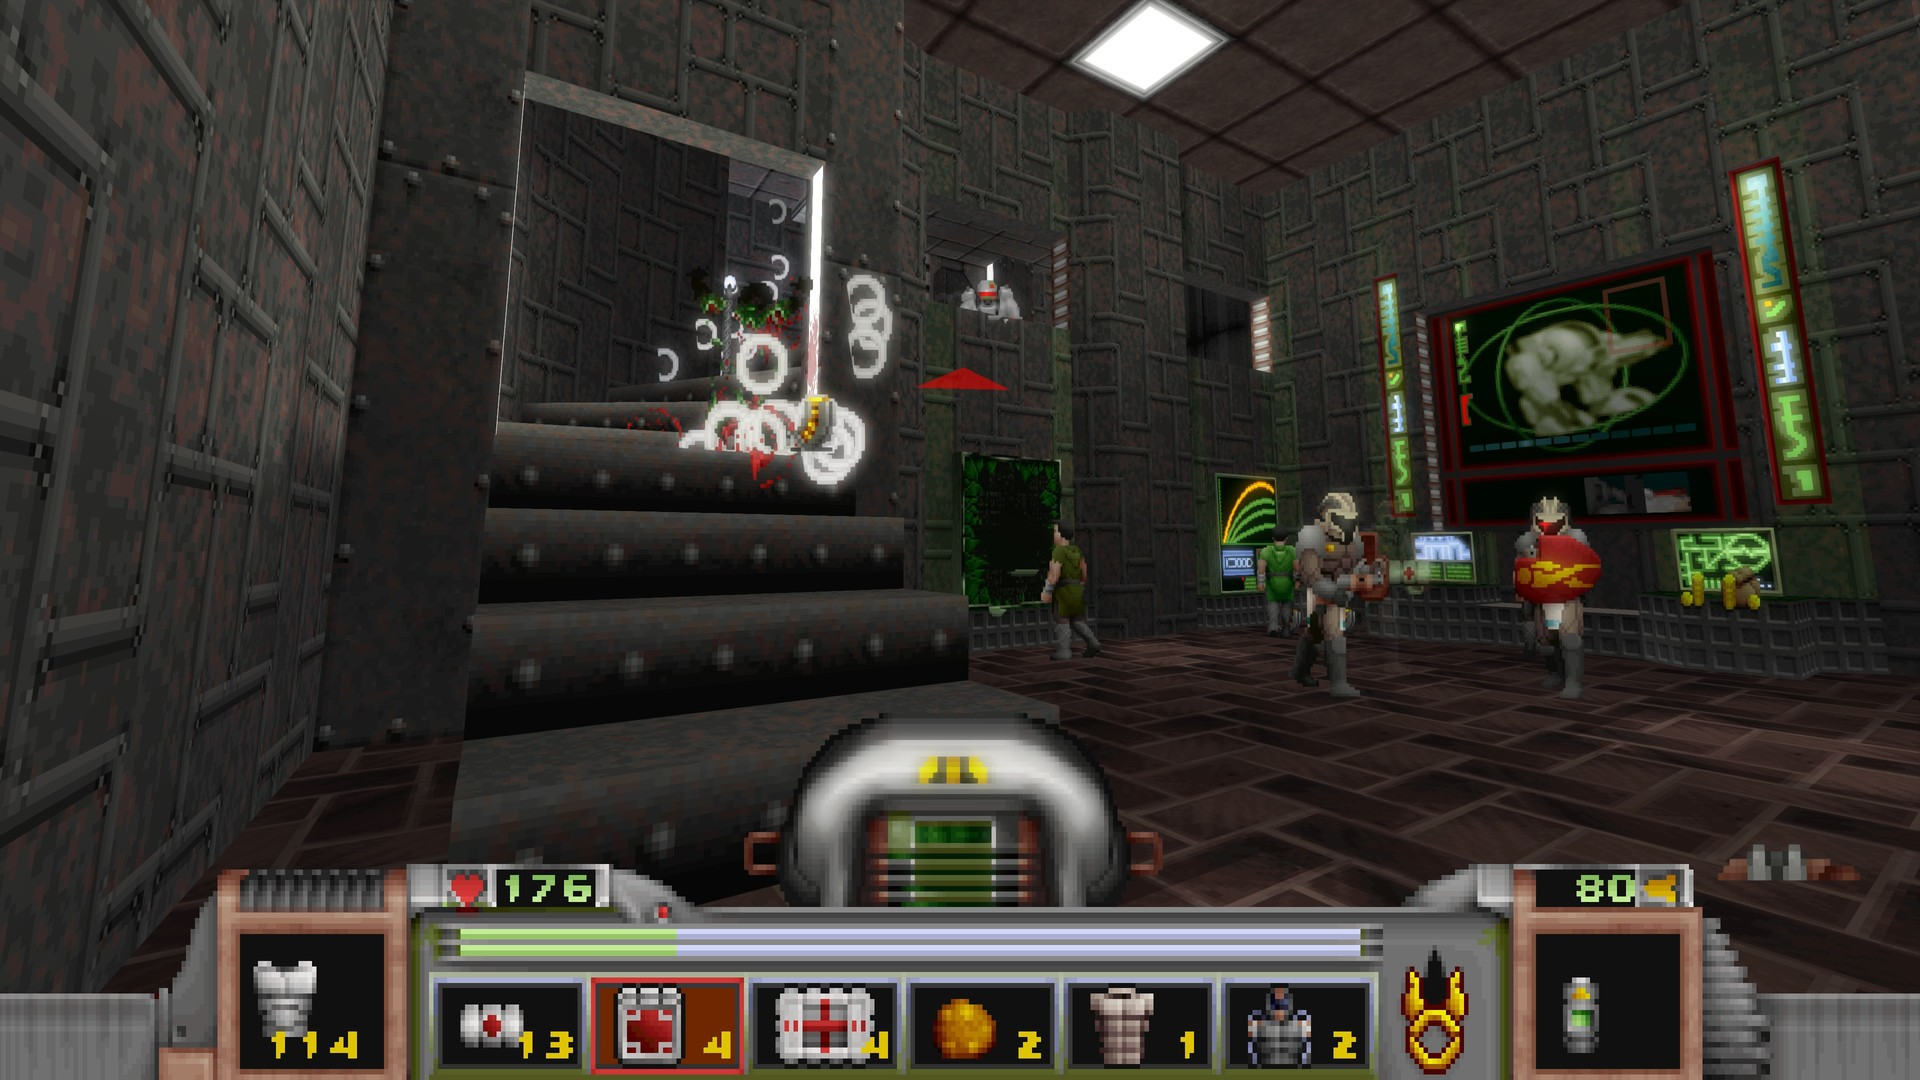 The Original Strife: Veteran Edition Is an Old FPS Built on the